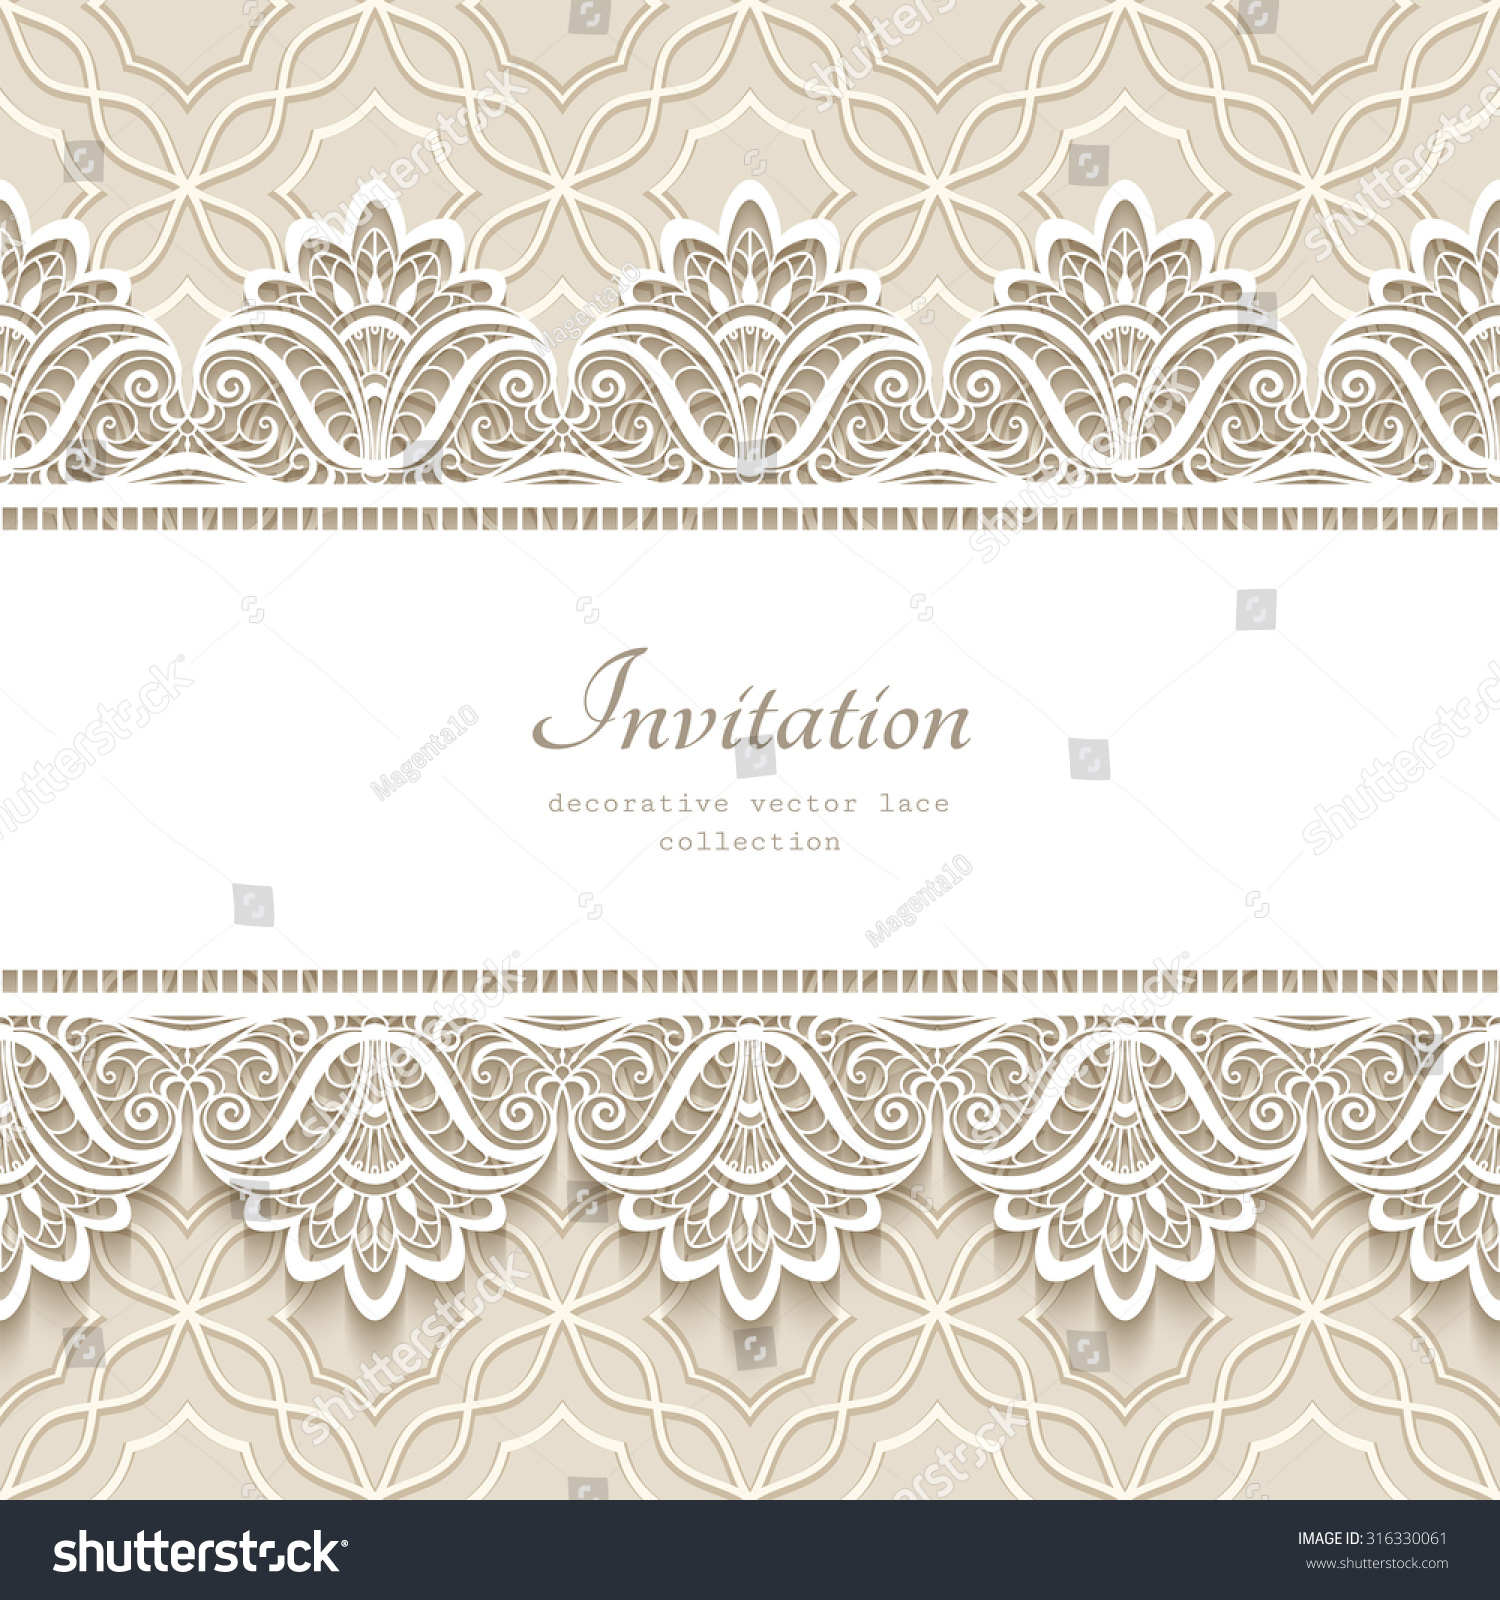 878c24c274 Royalty-free Vintage lace background with seamless…  316330061 Stock ...